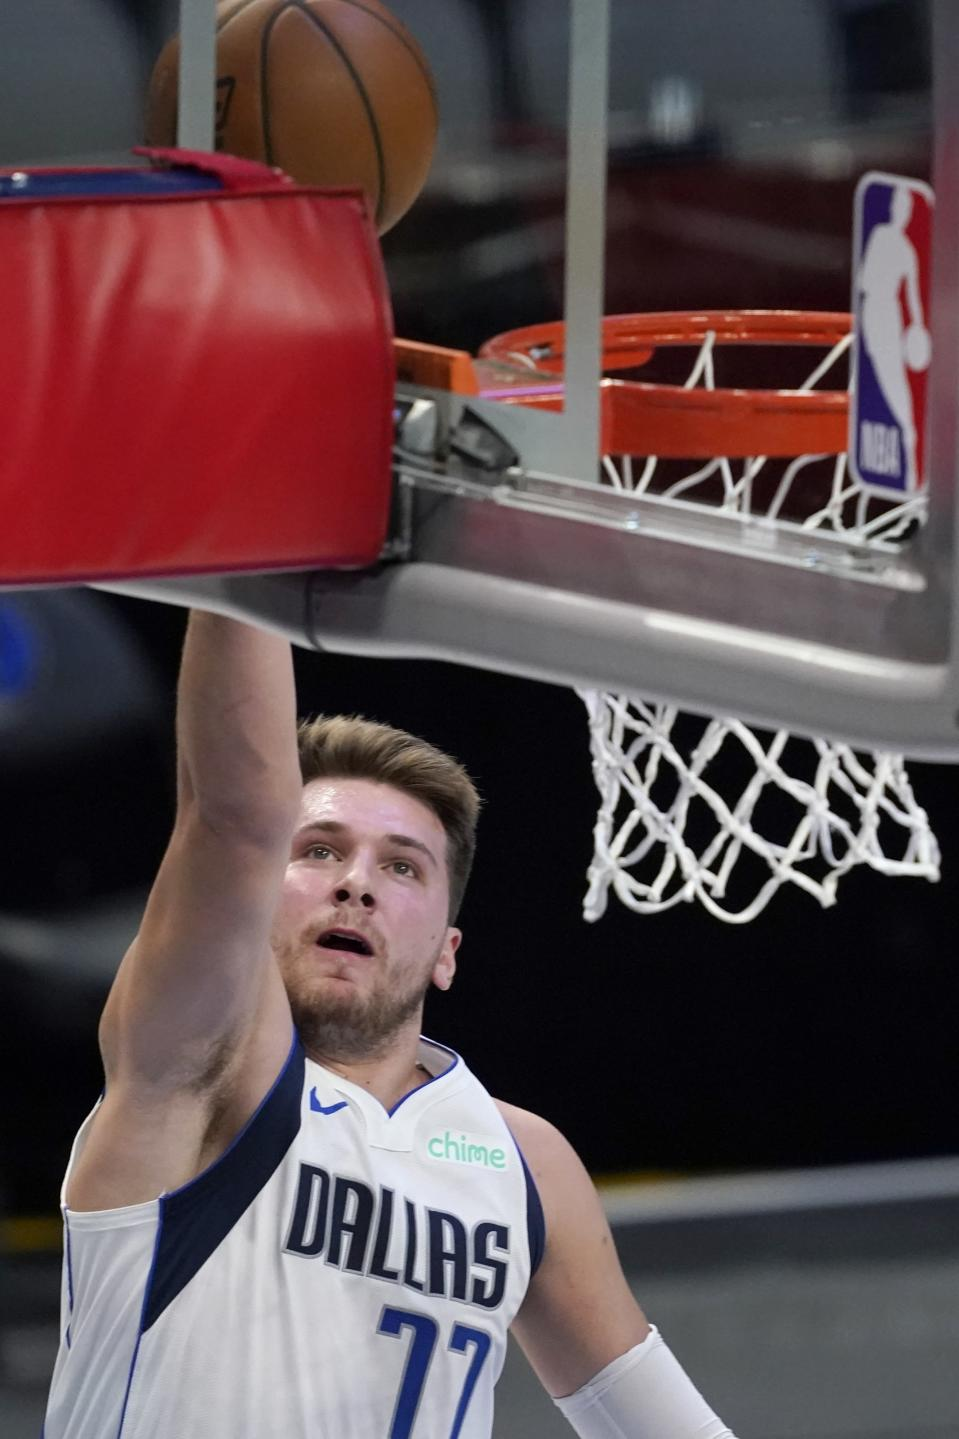 Dallas Mavericks guard Luka Doncic goes up for a shot in the first half of an NBA preseason basketball game against the Minnesota Timberwolves in Dallas, Thursday, Dec. 17, 2020. (AP Photo/Tony Gutierrez)